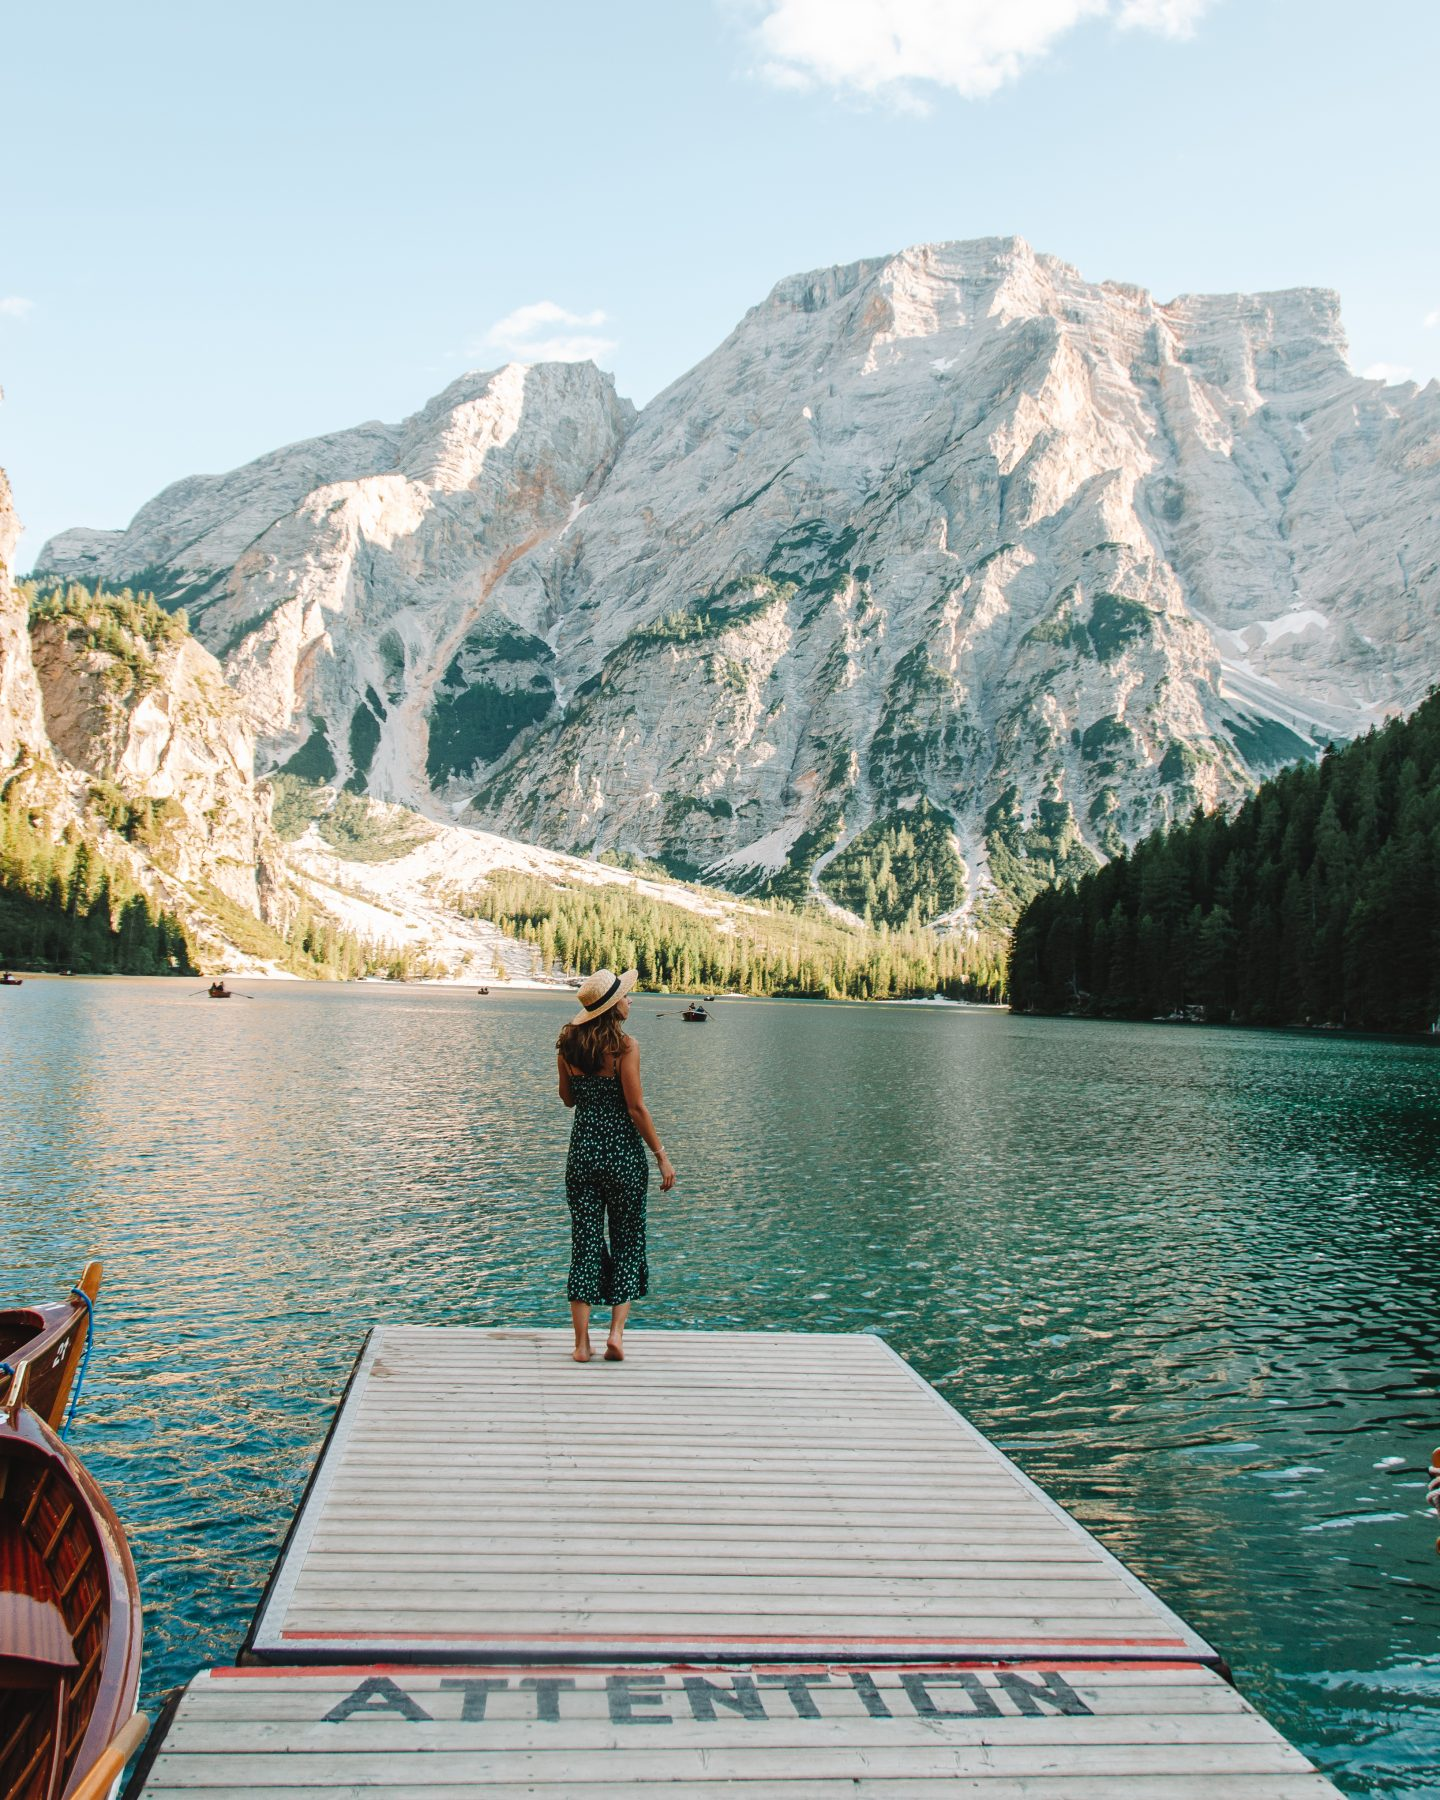 a girl on a dock in front of a lake in the dolomites, italy